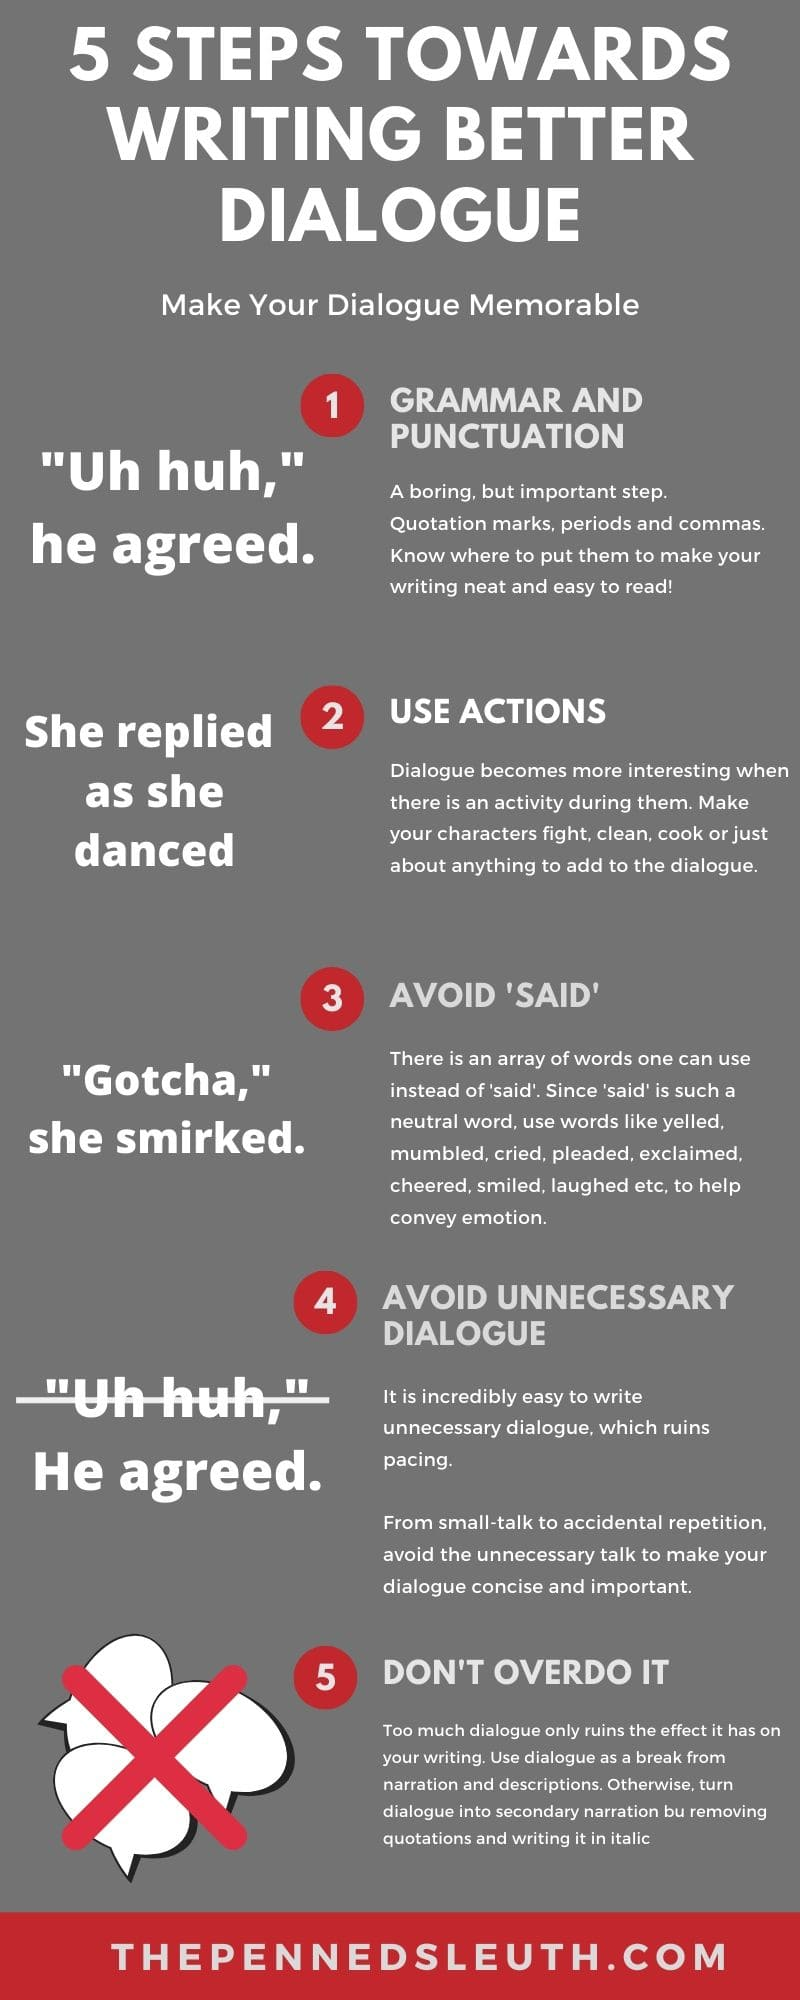 How You Can Write Better Dialogue in 5 Steps, Matthew Dewey, The Penned Sleuth, Dialogue, much like any part of writing a novel, has its own challenges. There are many examples of dialogue falling flat, of dialogue being used for small-talk and other unnecessary conversations. I have organized this 5-step process to ensure you get a grip on great dialogue.  Let's jump into it!